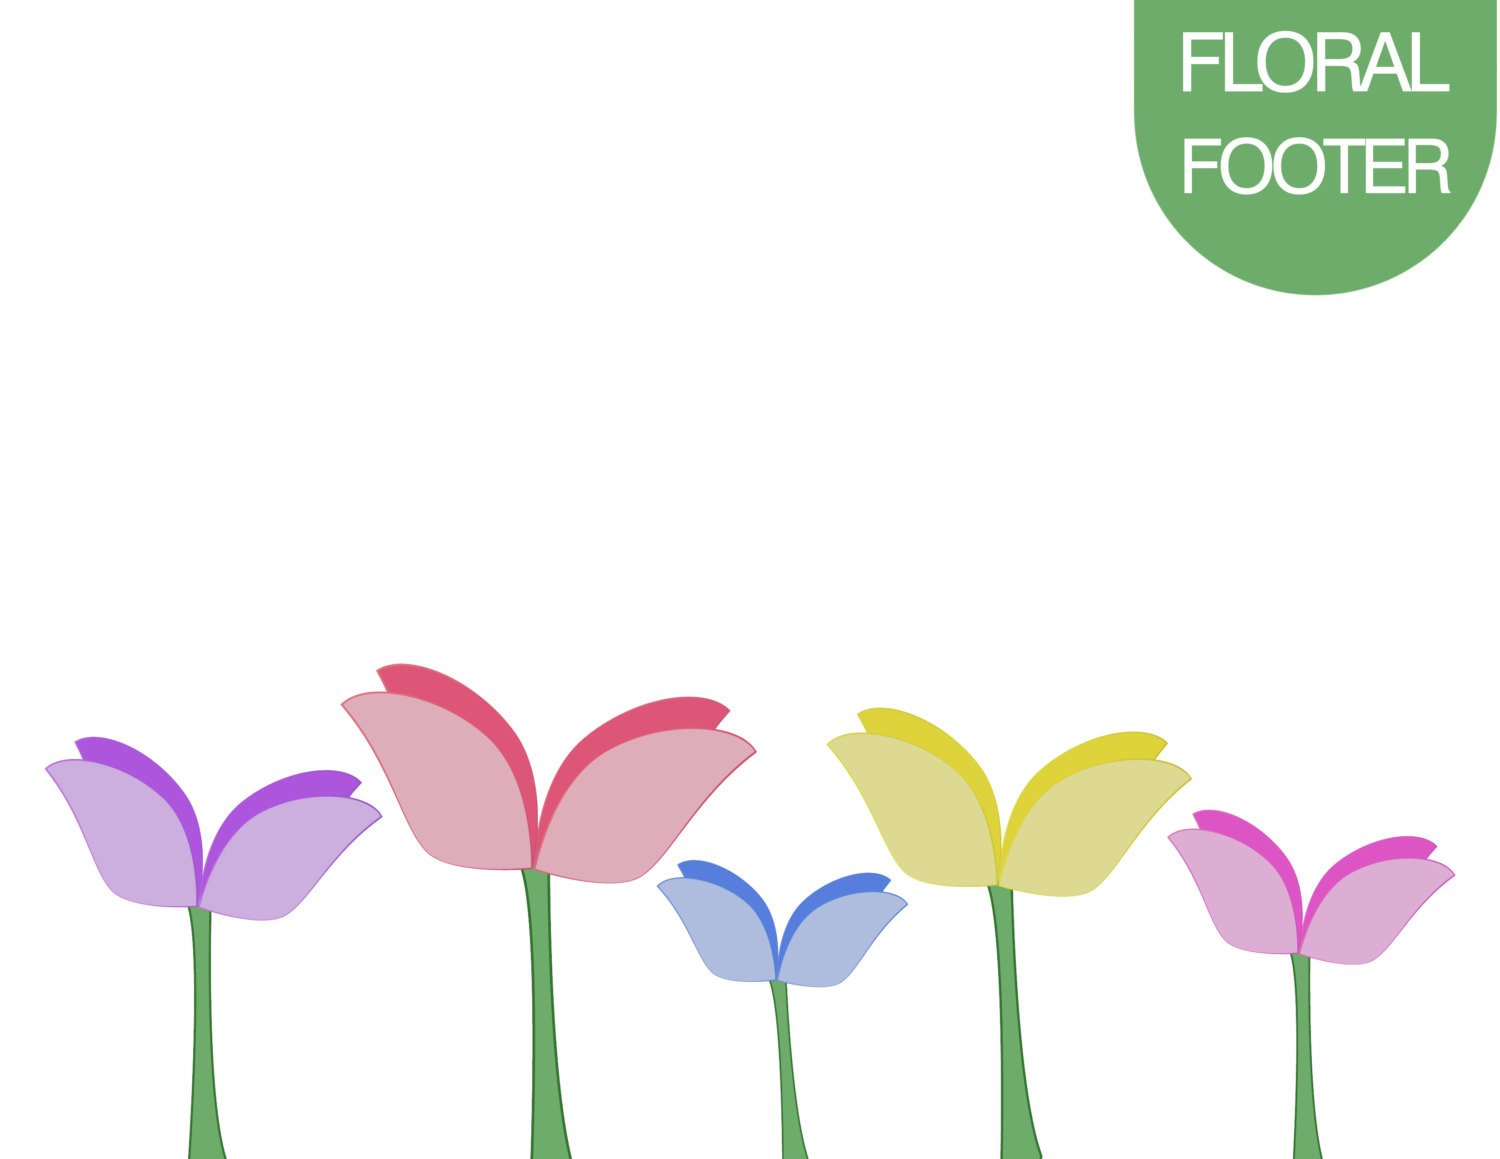 1500x1159 Flower Clipart, Floral Clip Art, Floral Footer, Floral Background